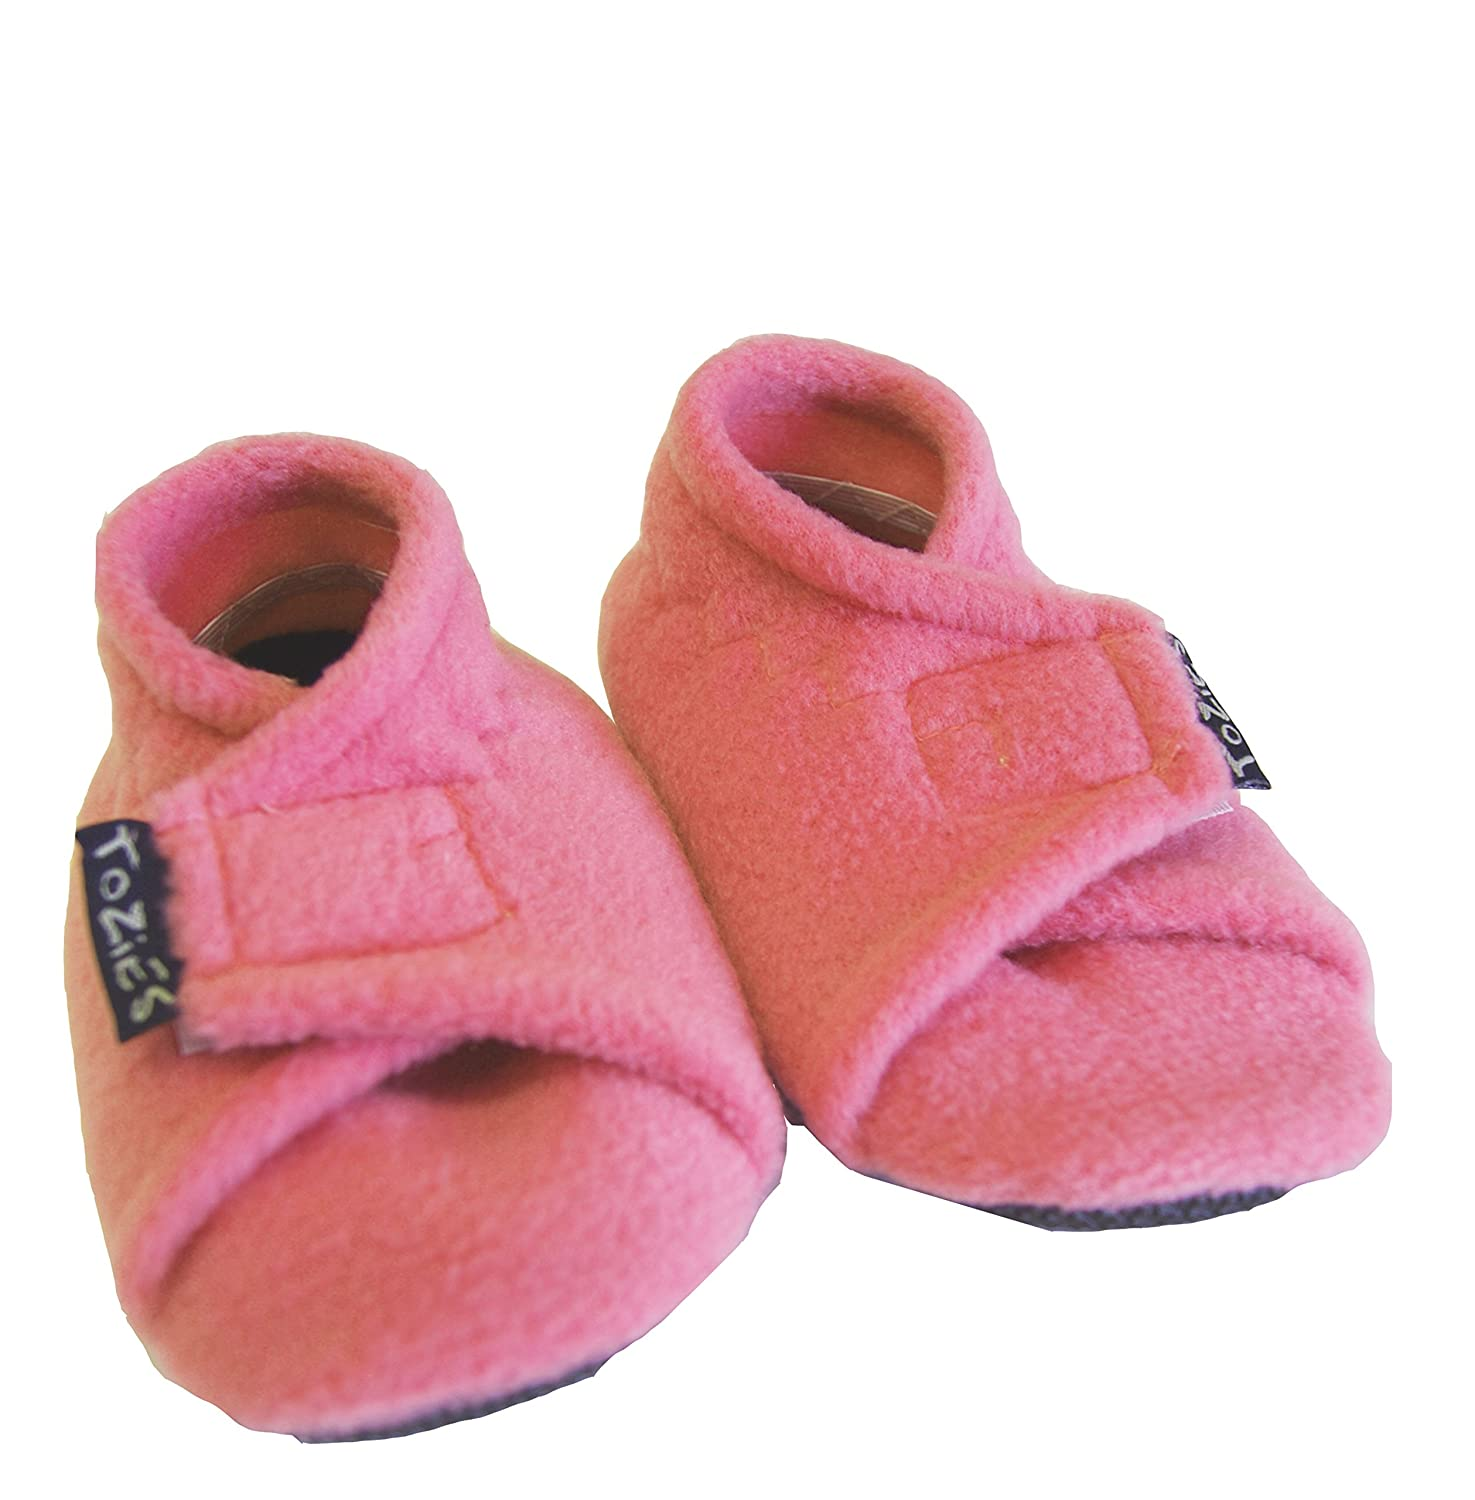 TOZIES Baby Toddler Boys Girls Soft and Cosy Slippers Play Shoes Non Slip Soles Stay On